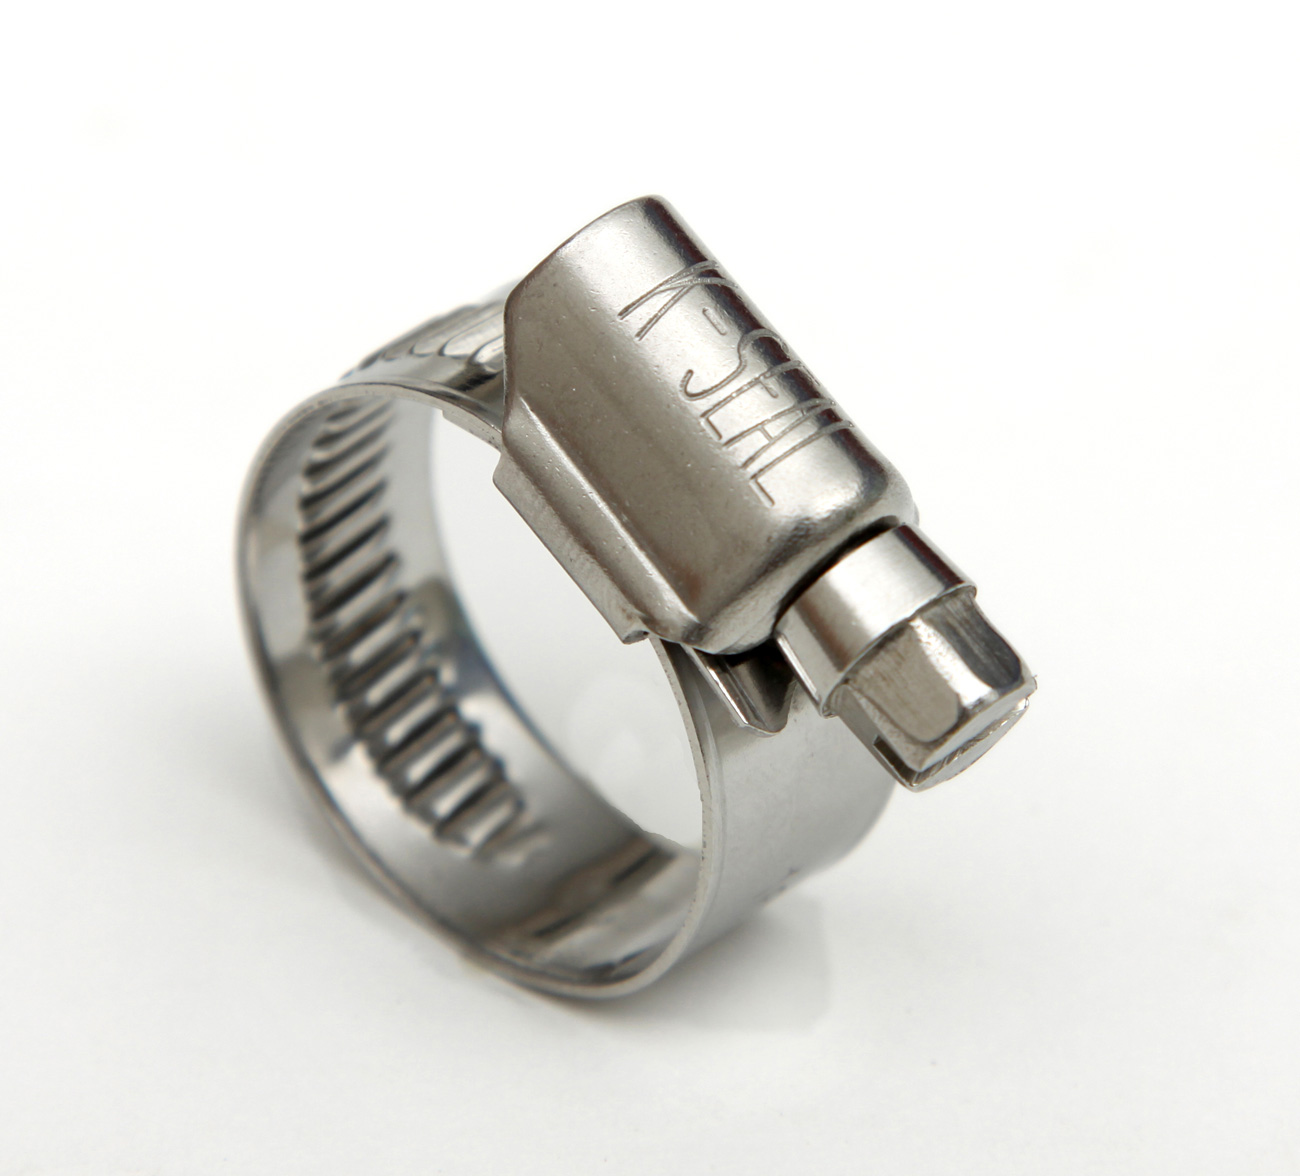 Steel Pipe Clips : Stainless steel pipe clamps